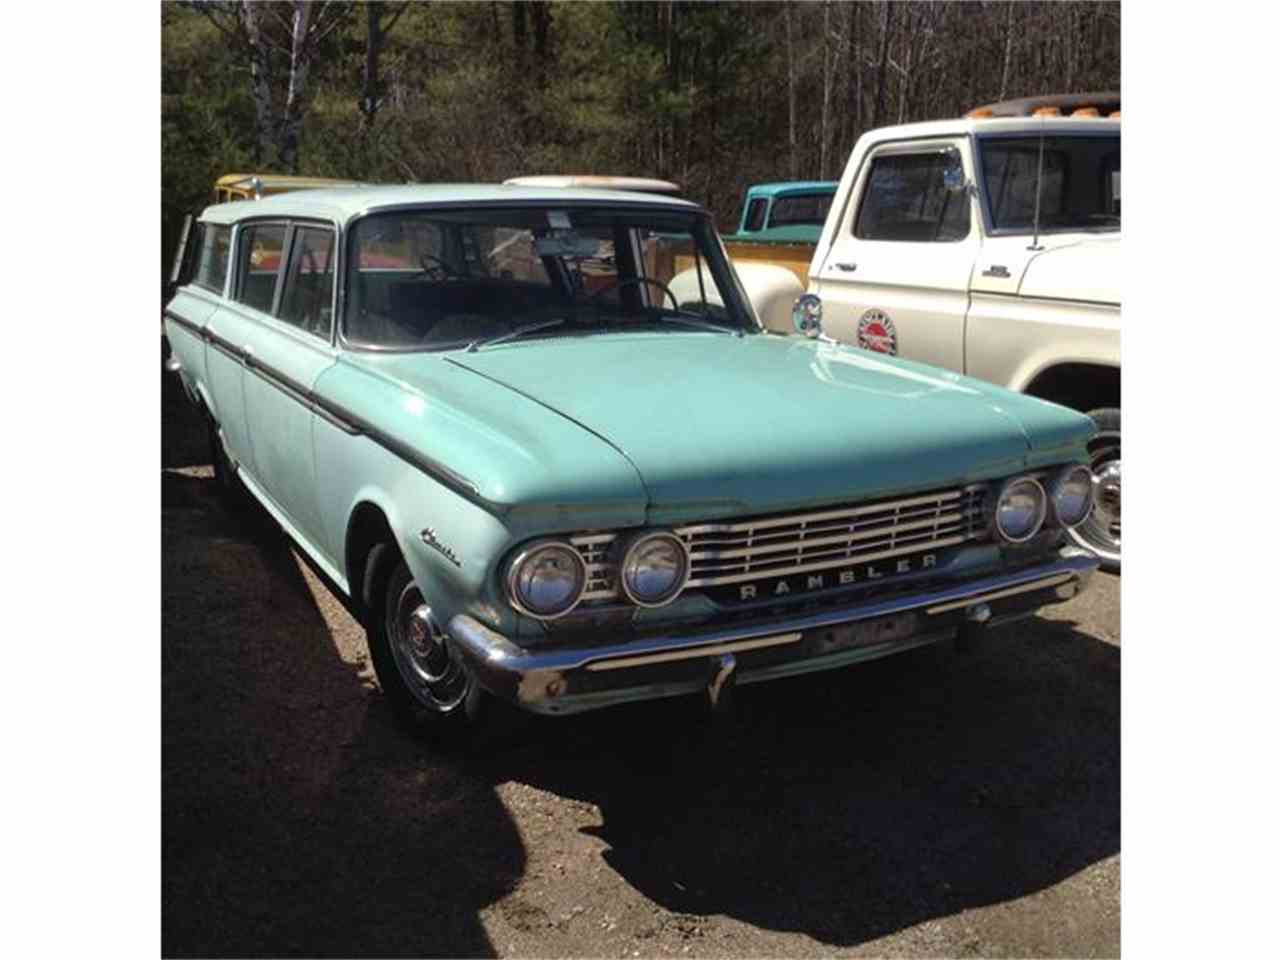 Large Picture of '60 AMC Rambler located in Arundel Maine - $6,500.00 Offered by Champion Auto Sales - HKQU